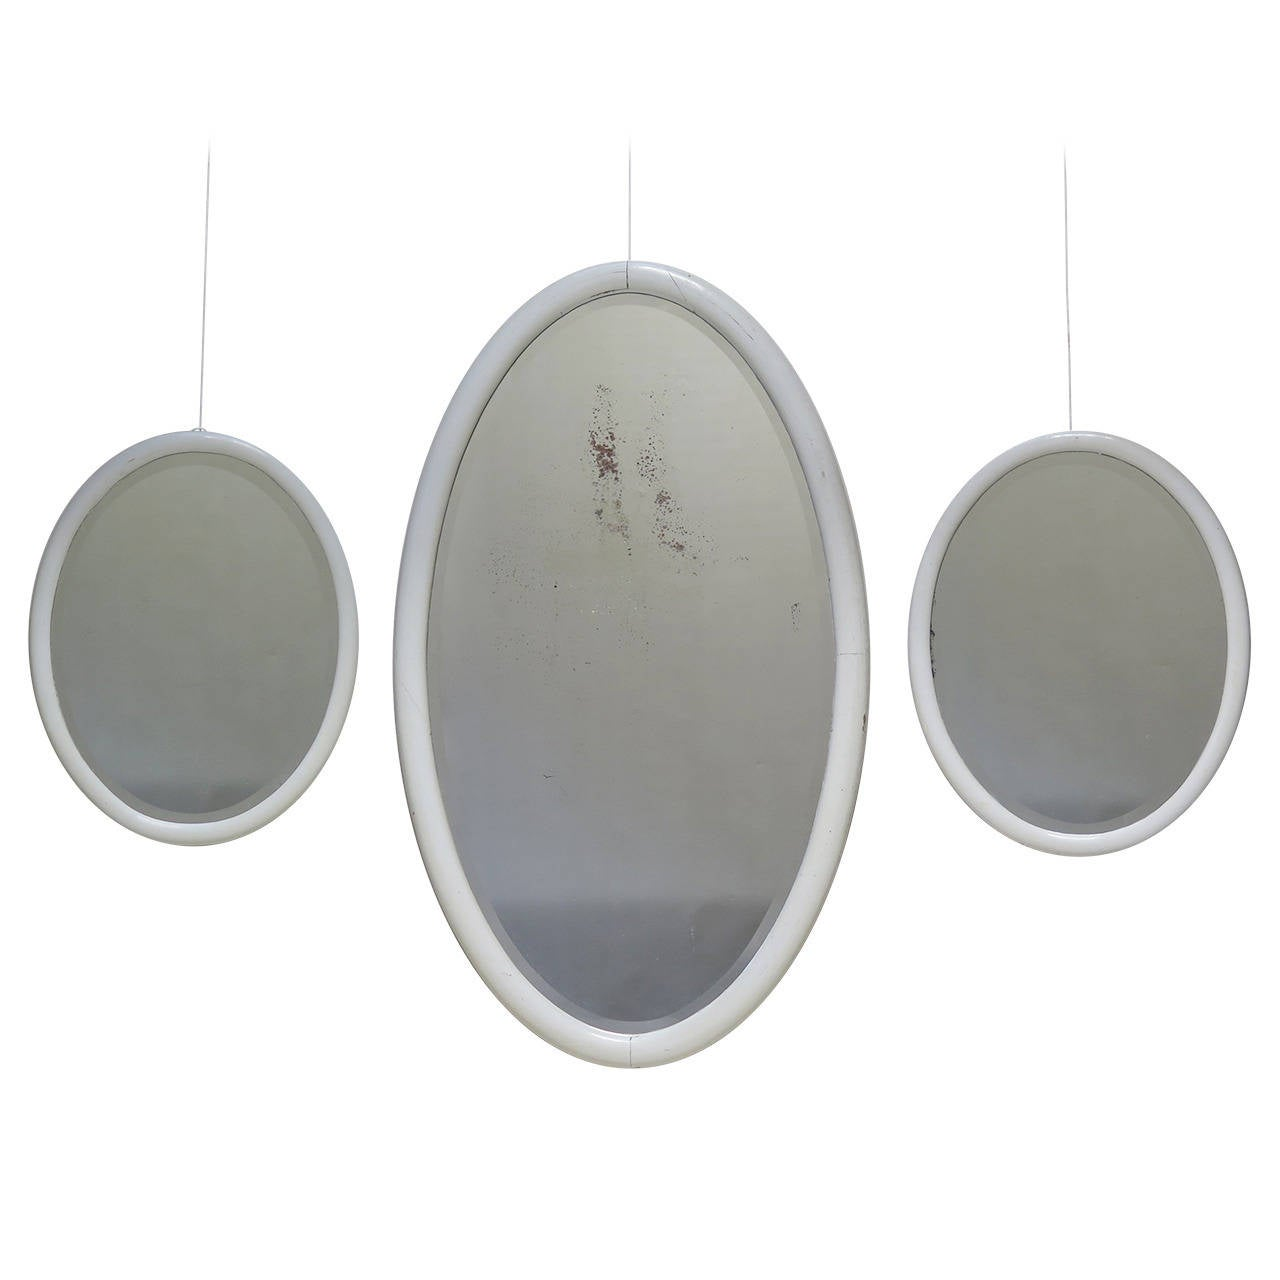 Set of Two Small and One Large Oval Mirrors, France, 1930s